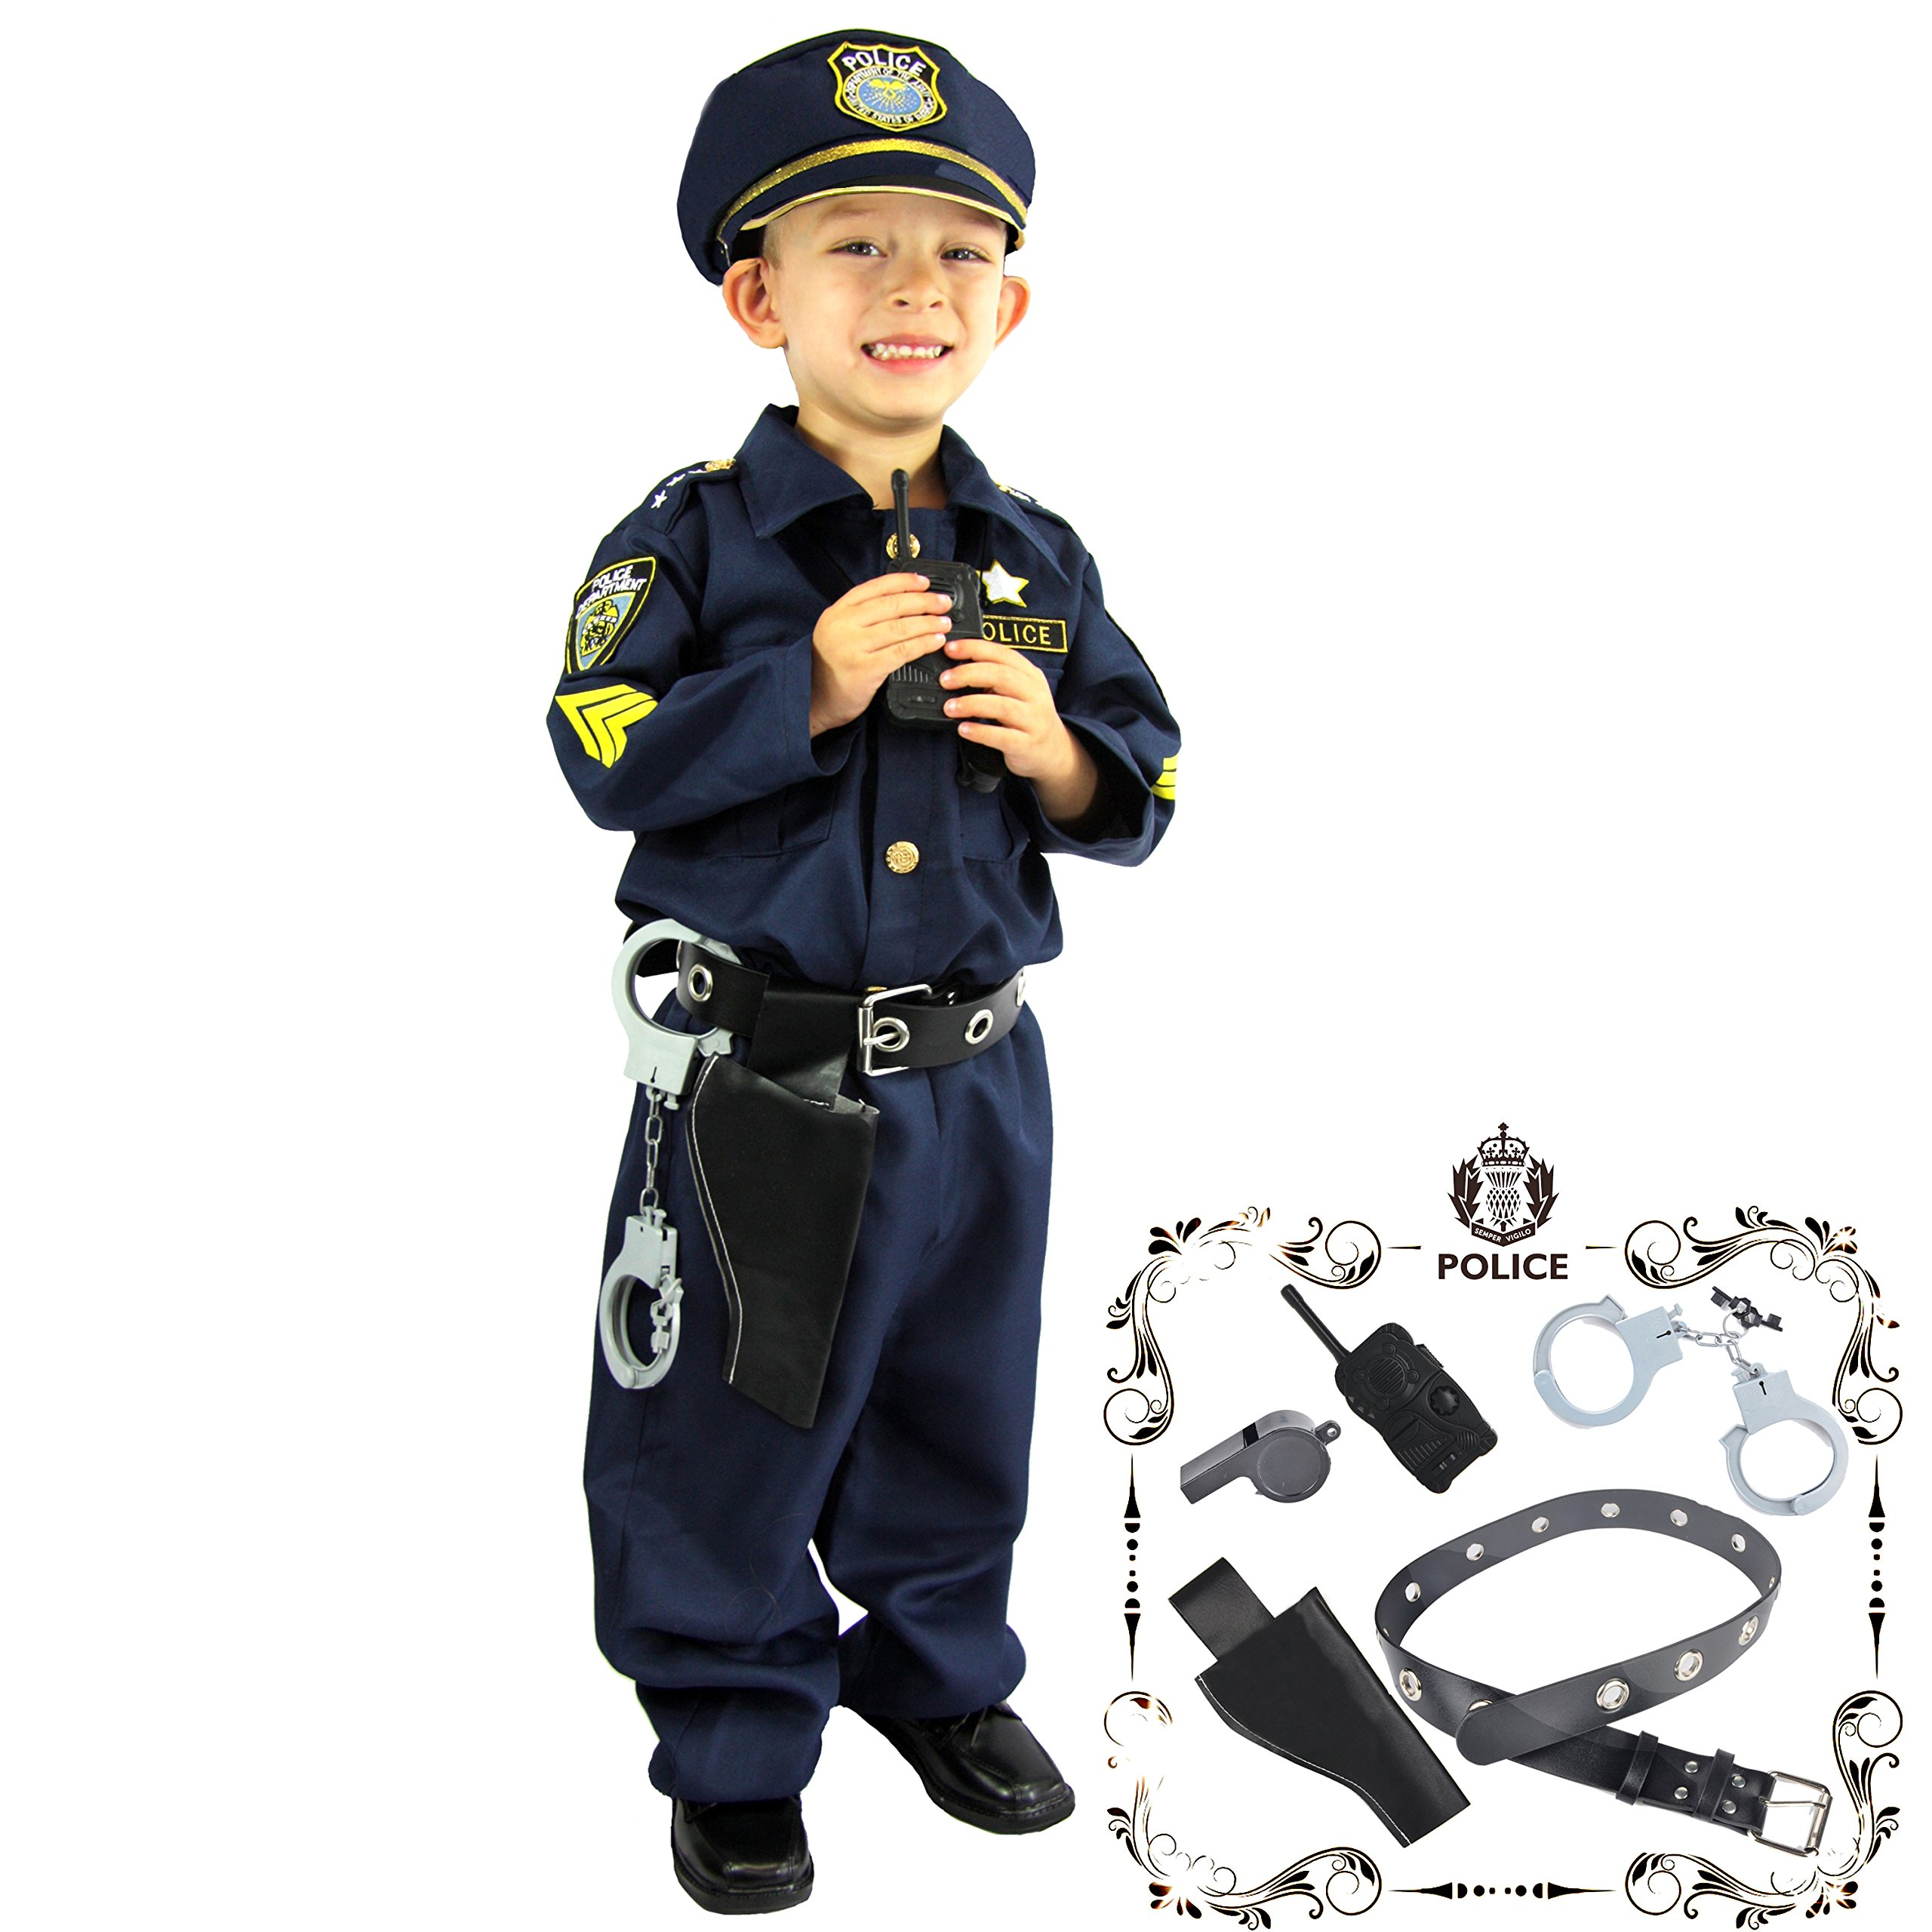 Joyin Toy Spooktacular Creations Deluxe Police Officer Costume for Kids and Role Play Kit (Small)